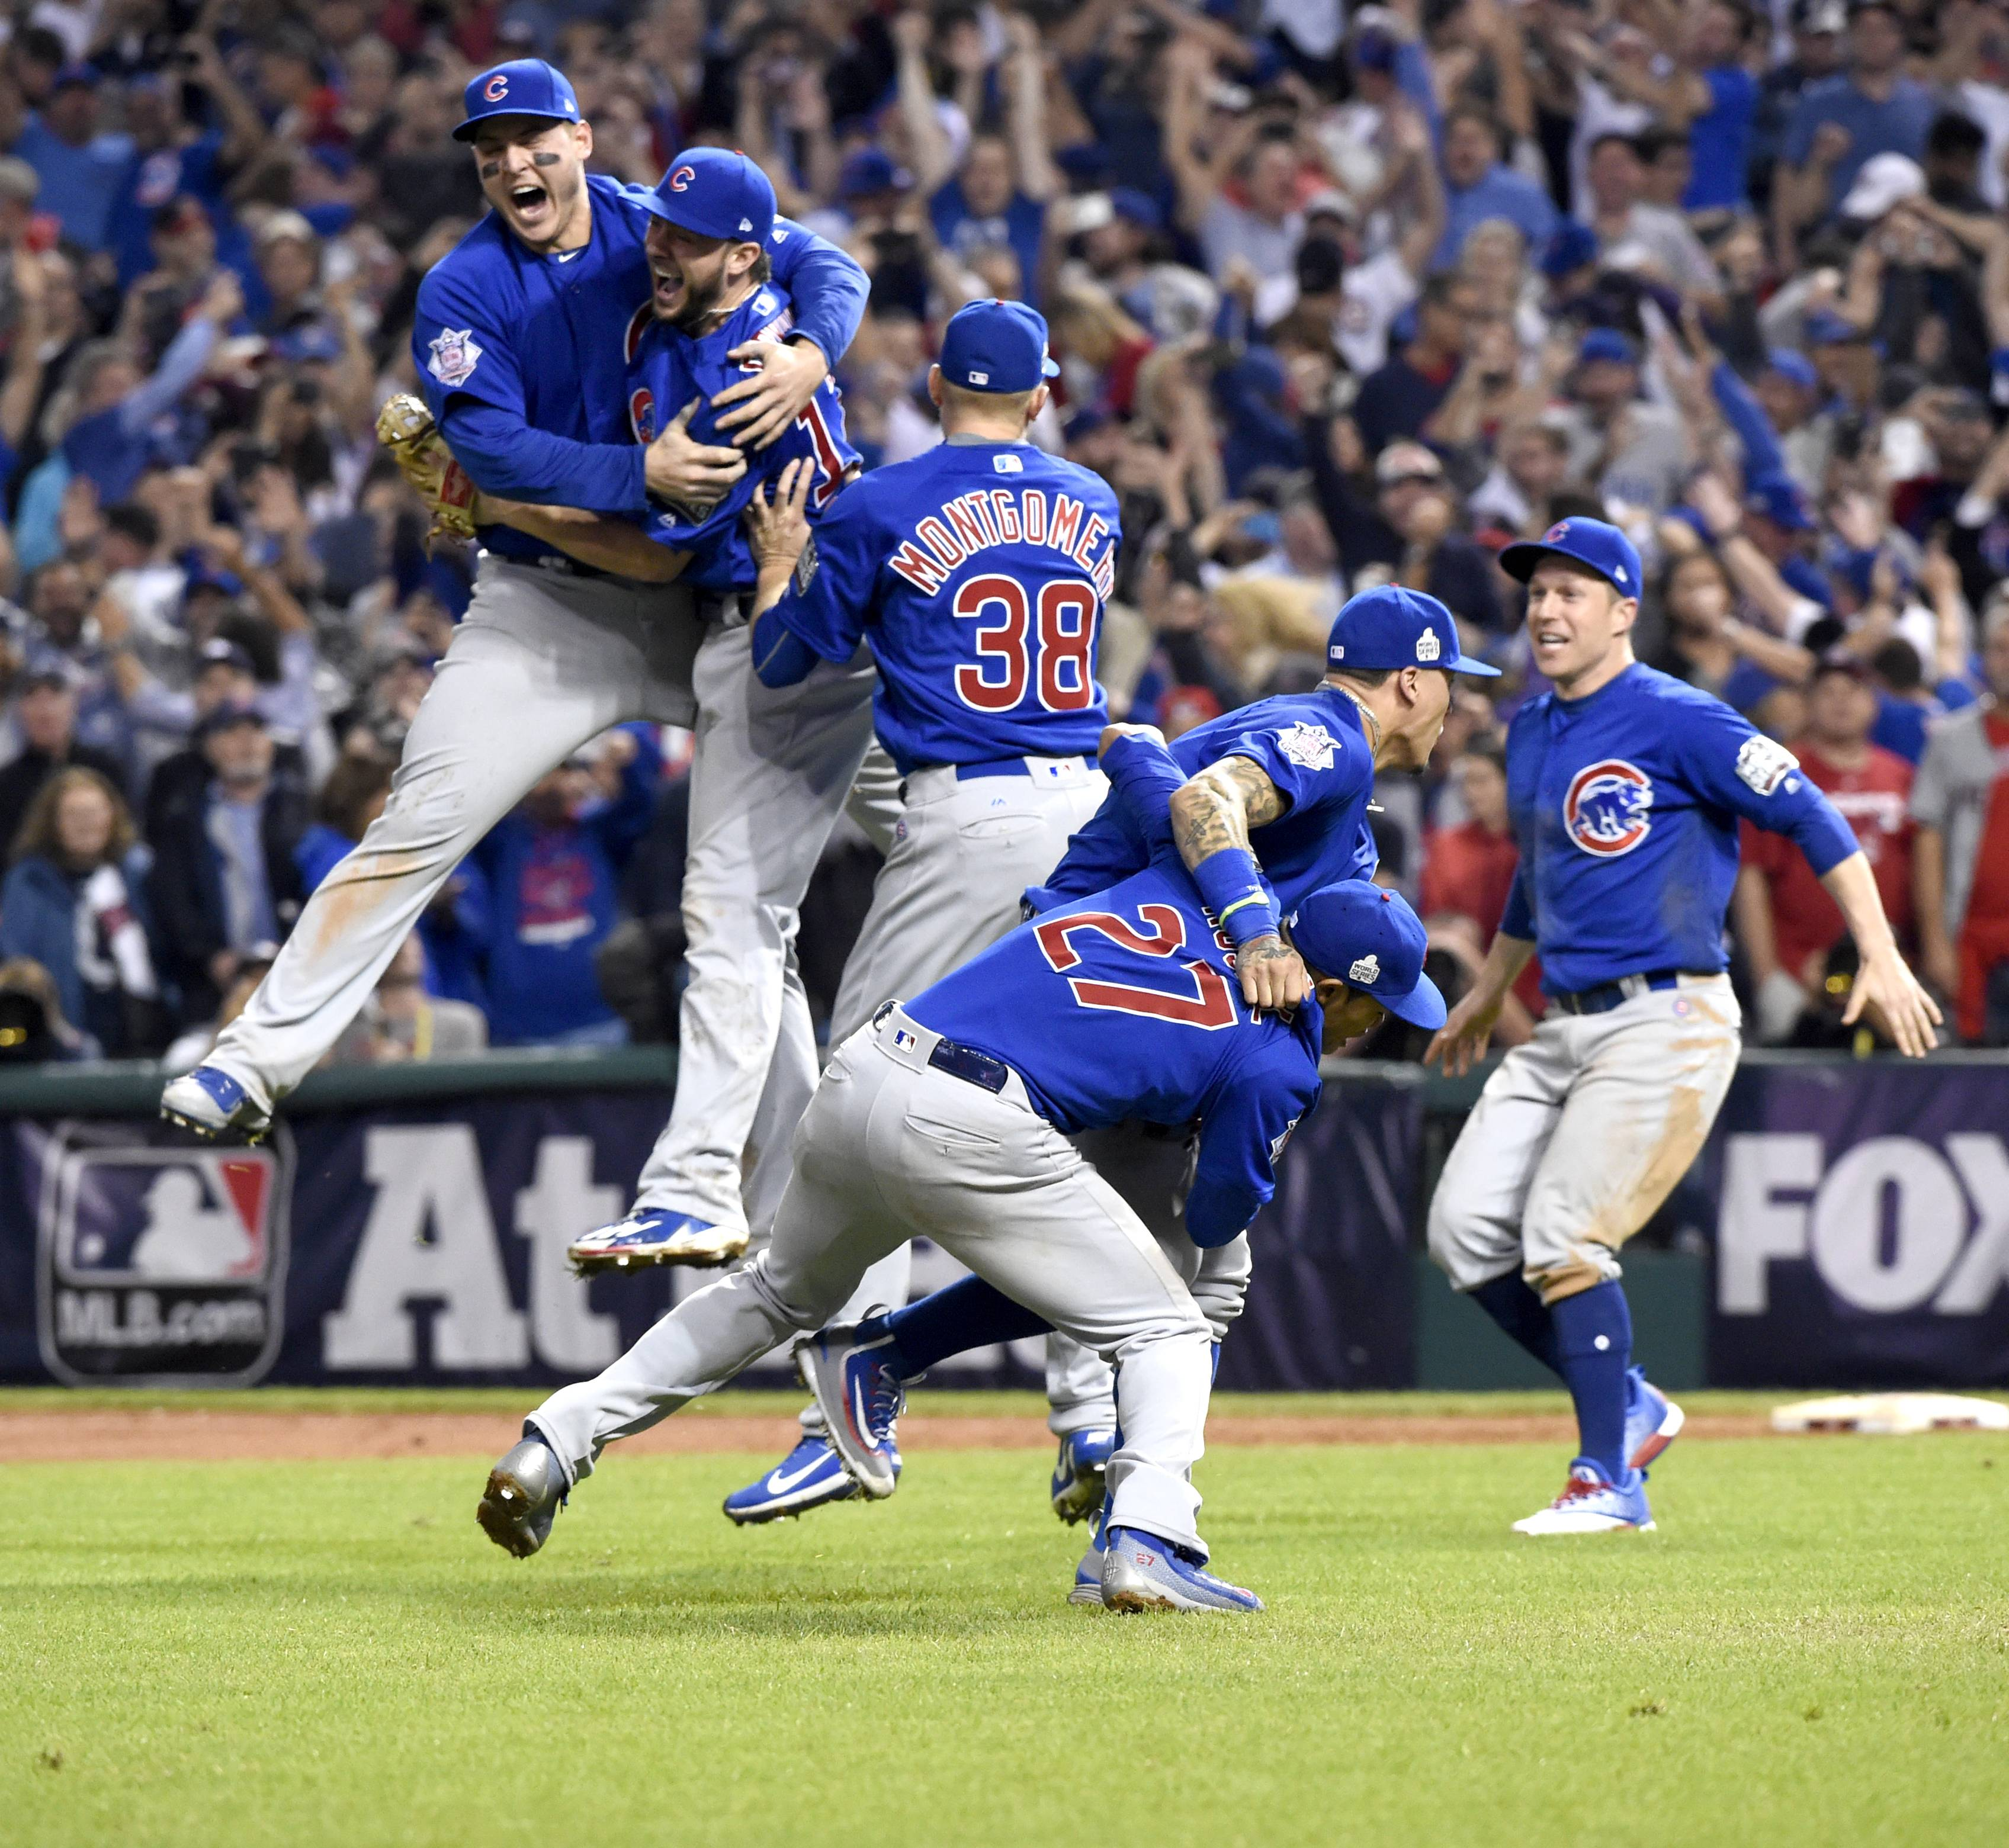 My love affair with the Chicago Cubs has had some rocky moments during the years, but we'll always have this moment in 2016 when the Cubs won the World Series.